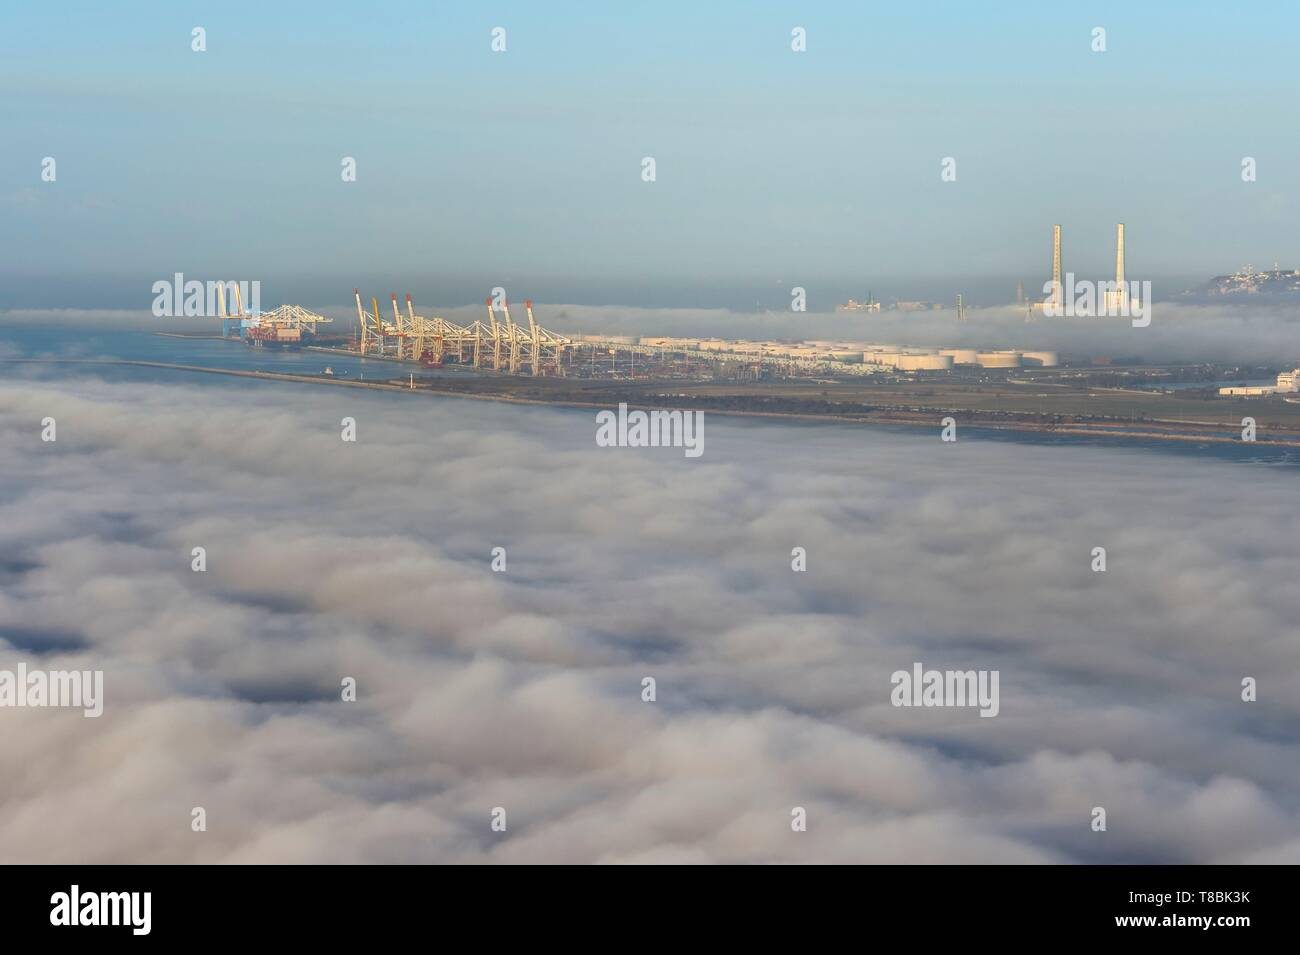 France, Seine Maritime, Le Havre, the port of Le Havre emerges from a sea of clouds - Stock Image